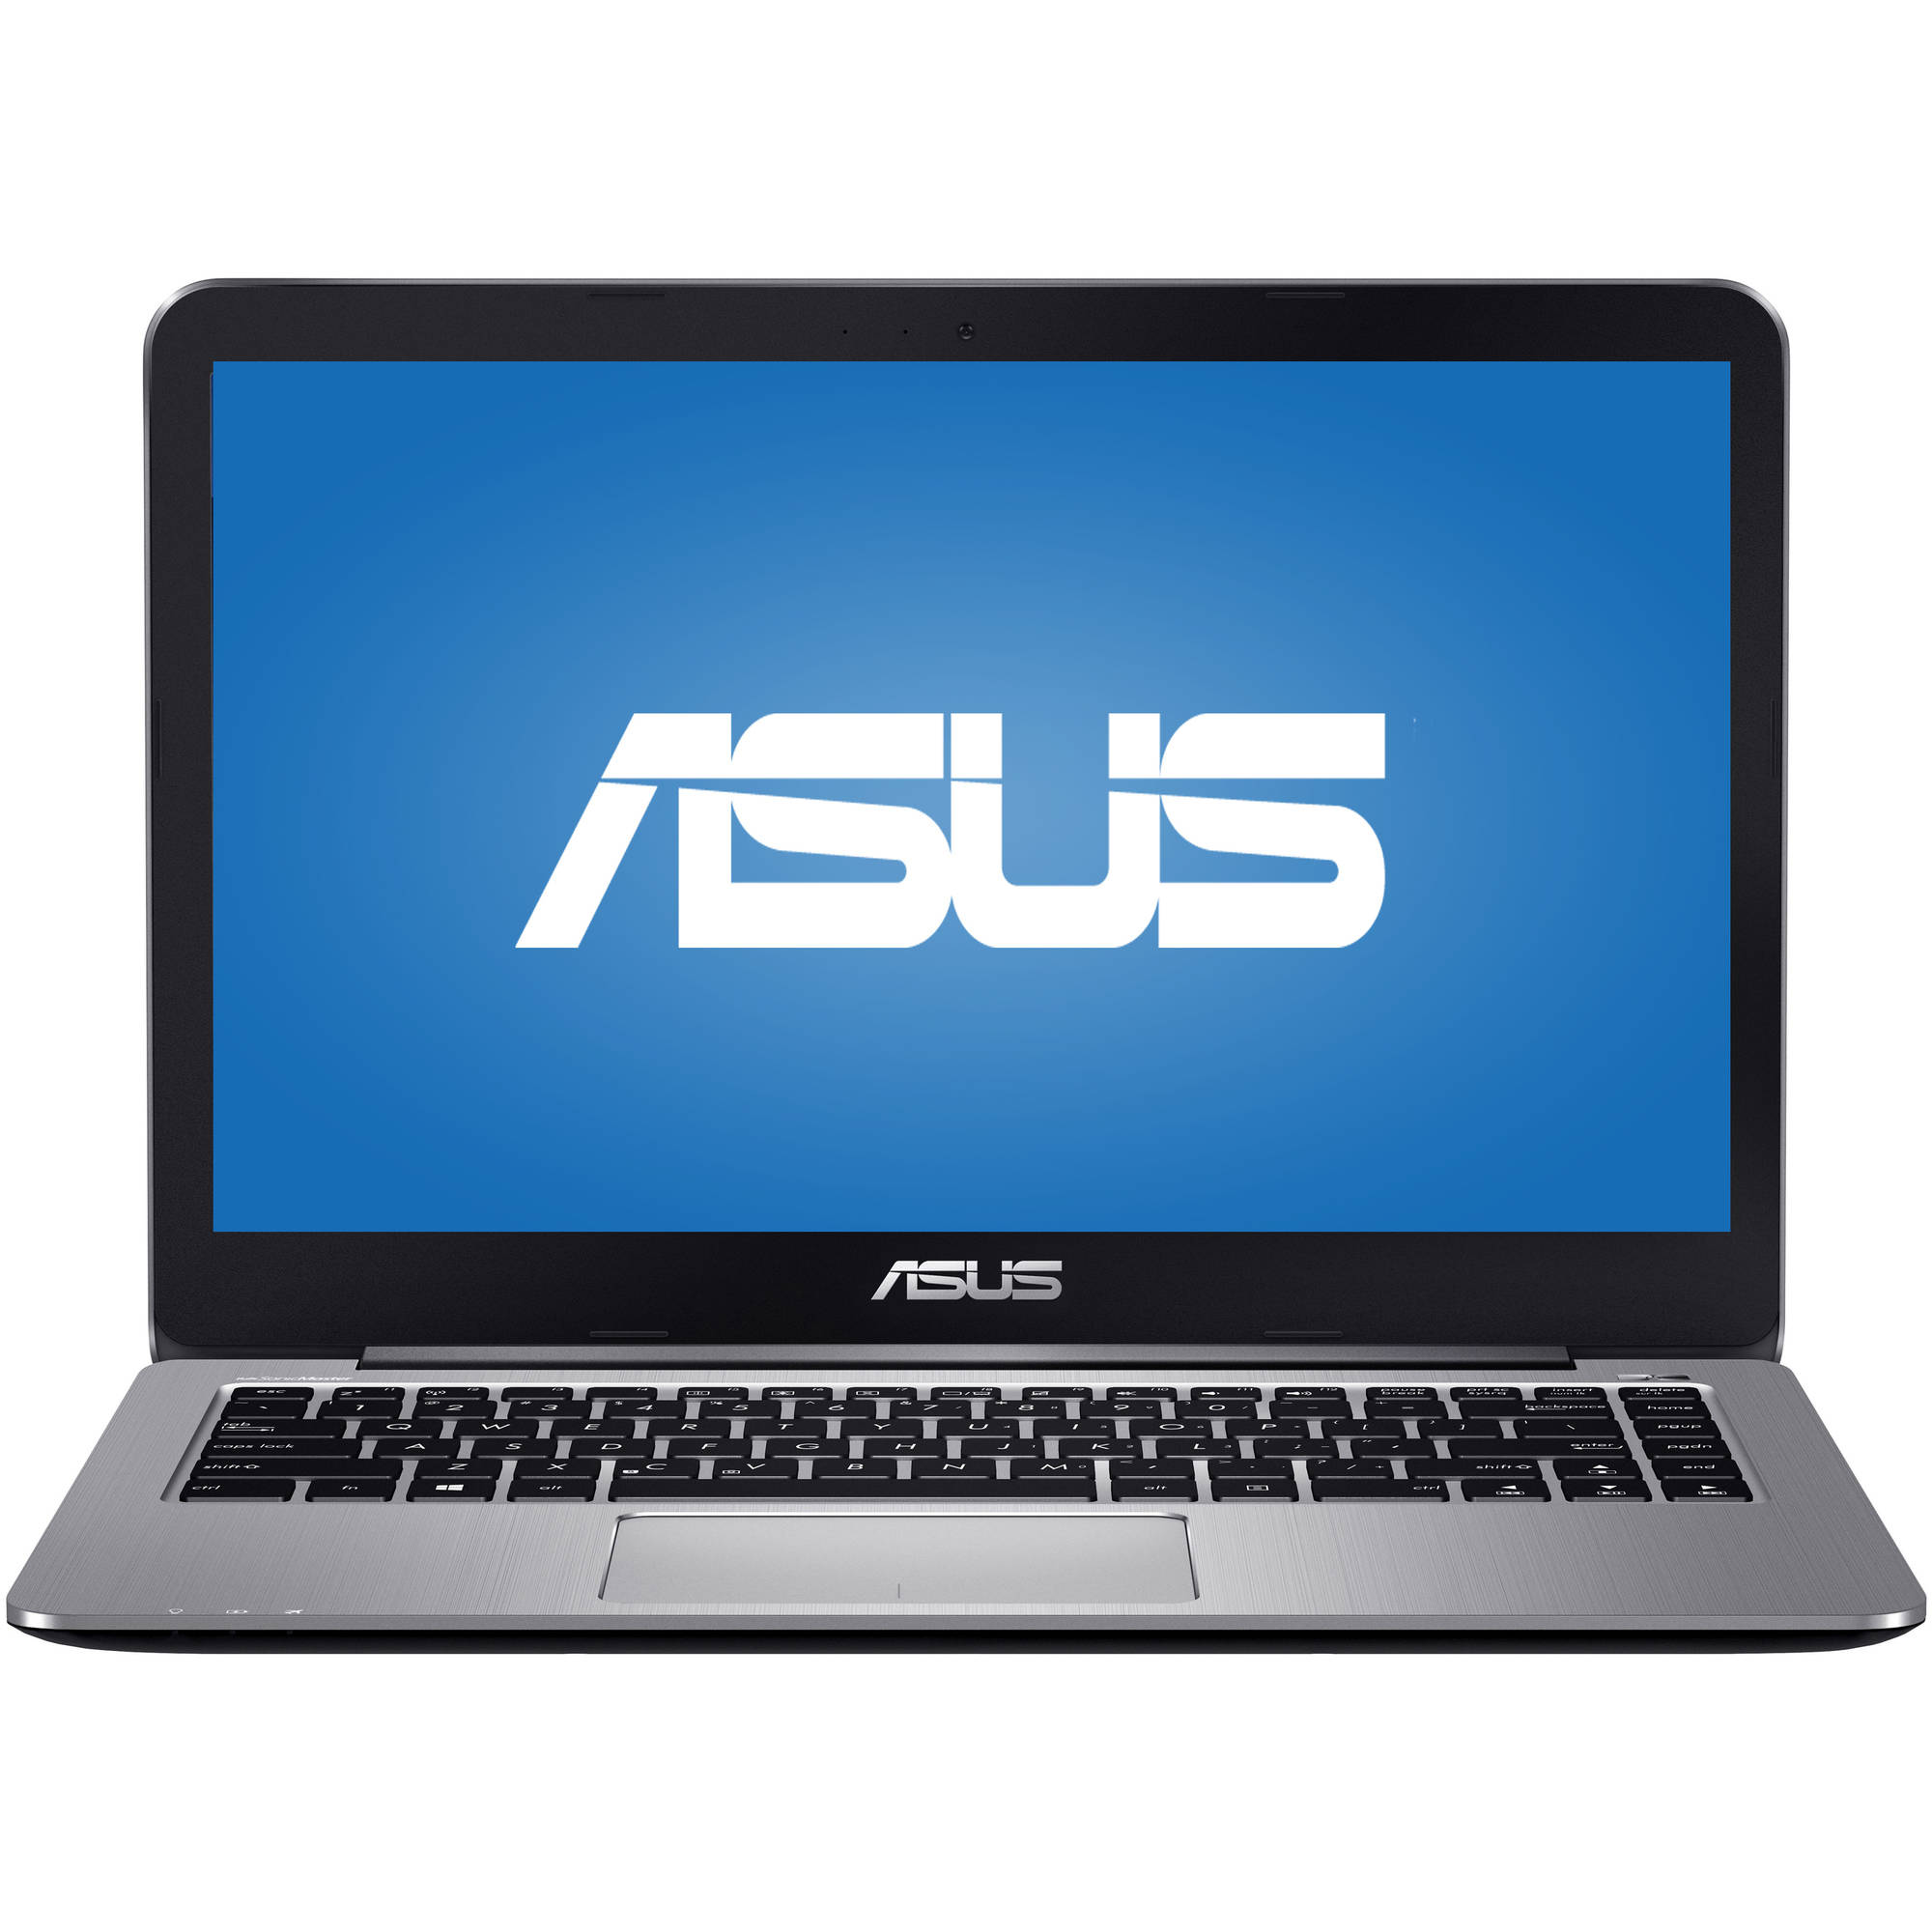 "Asus VivoBook E403SA-US21 14"" Laptop, Windows 10 Home, In..."